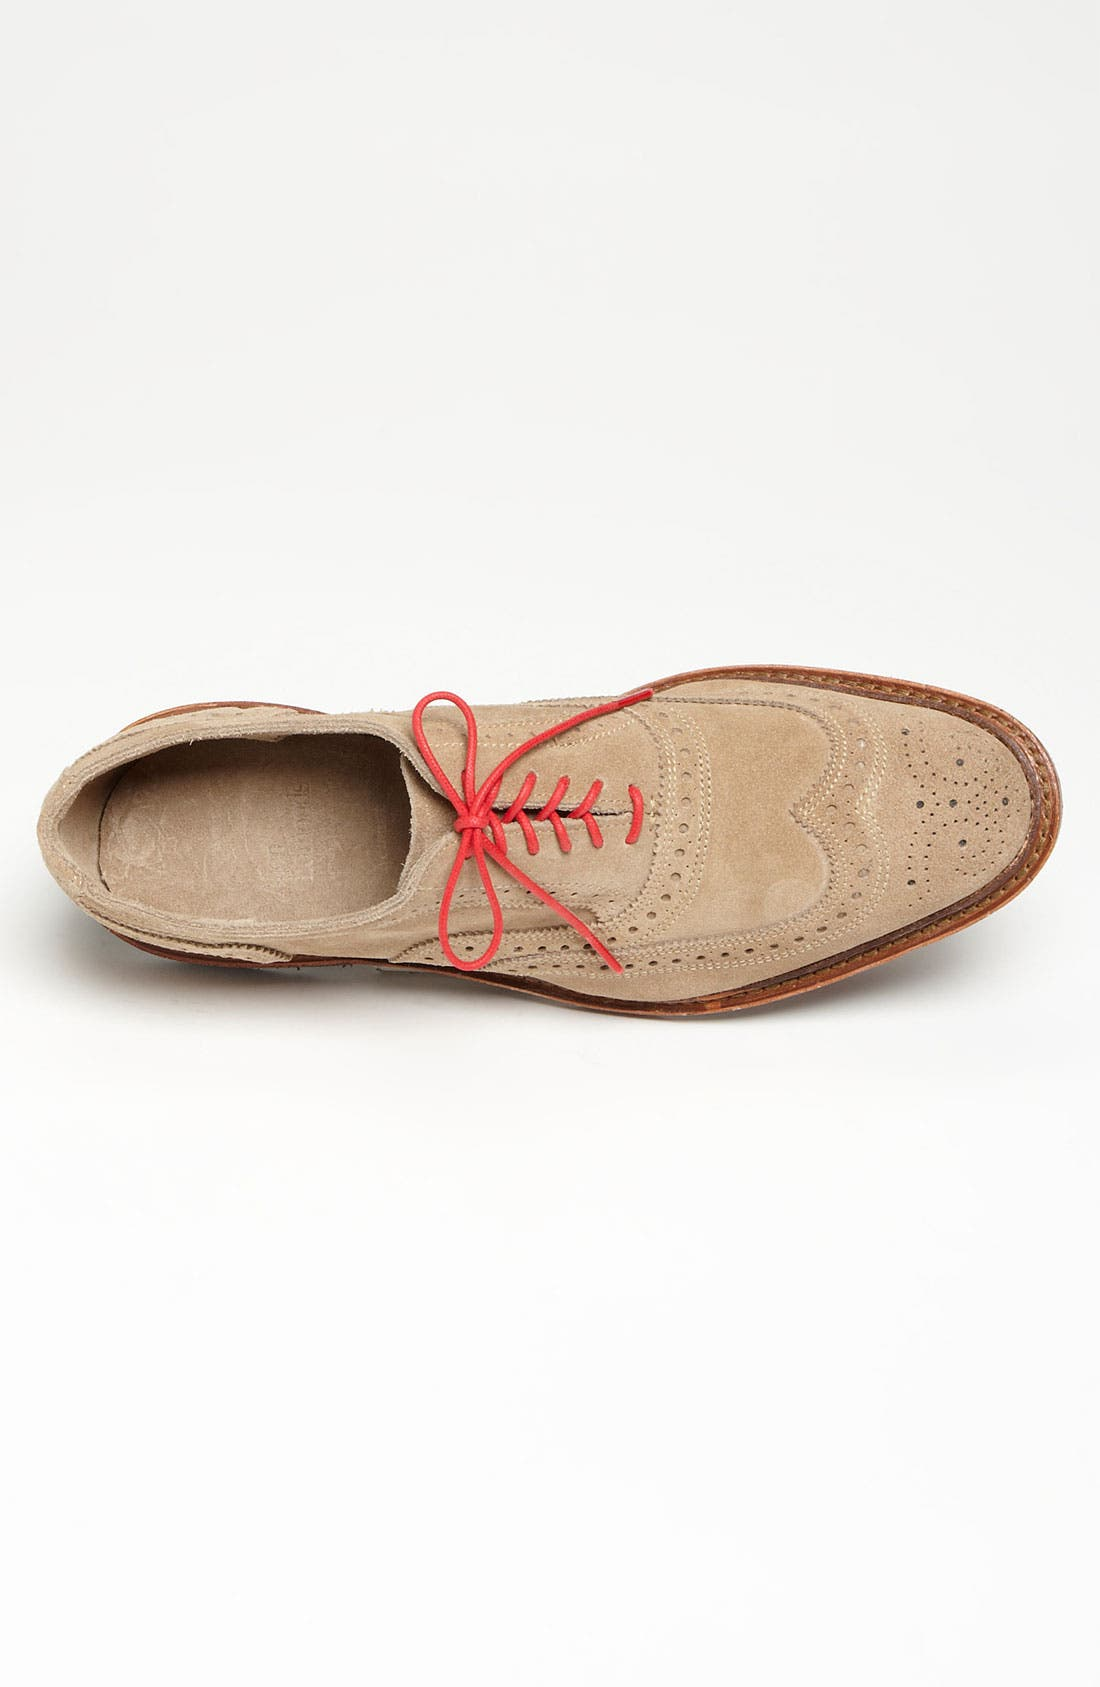 Alternate Image 3  - Allen Edmonds 'Neumok' Oxford (Men)